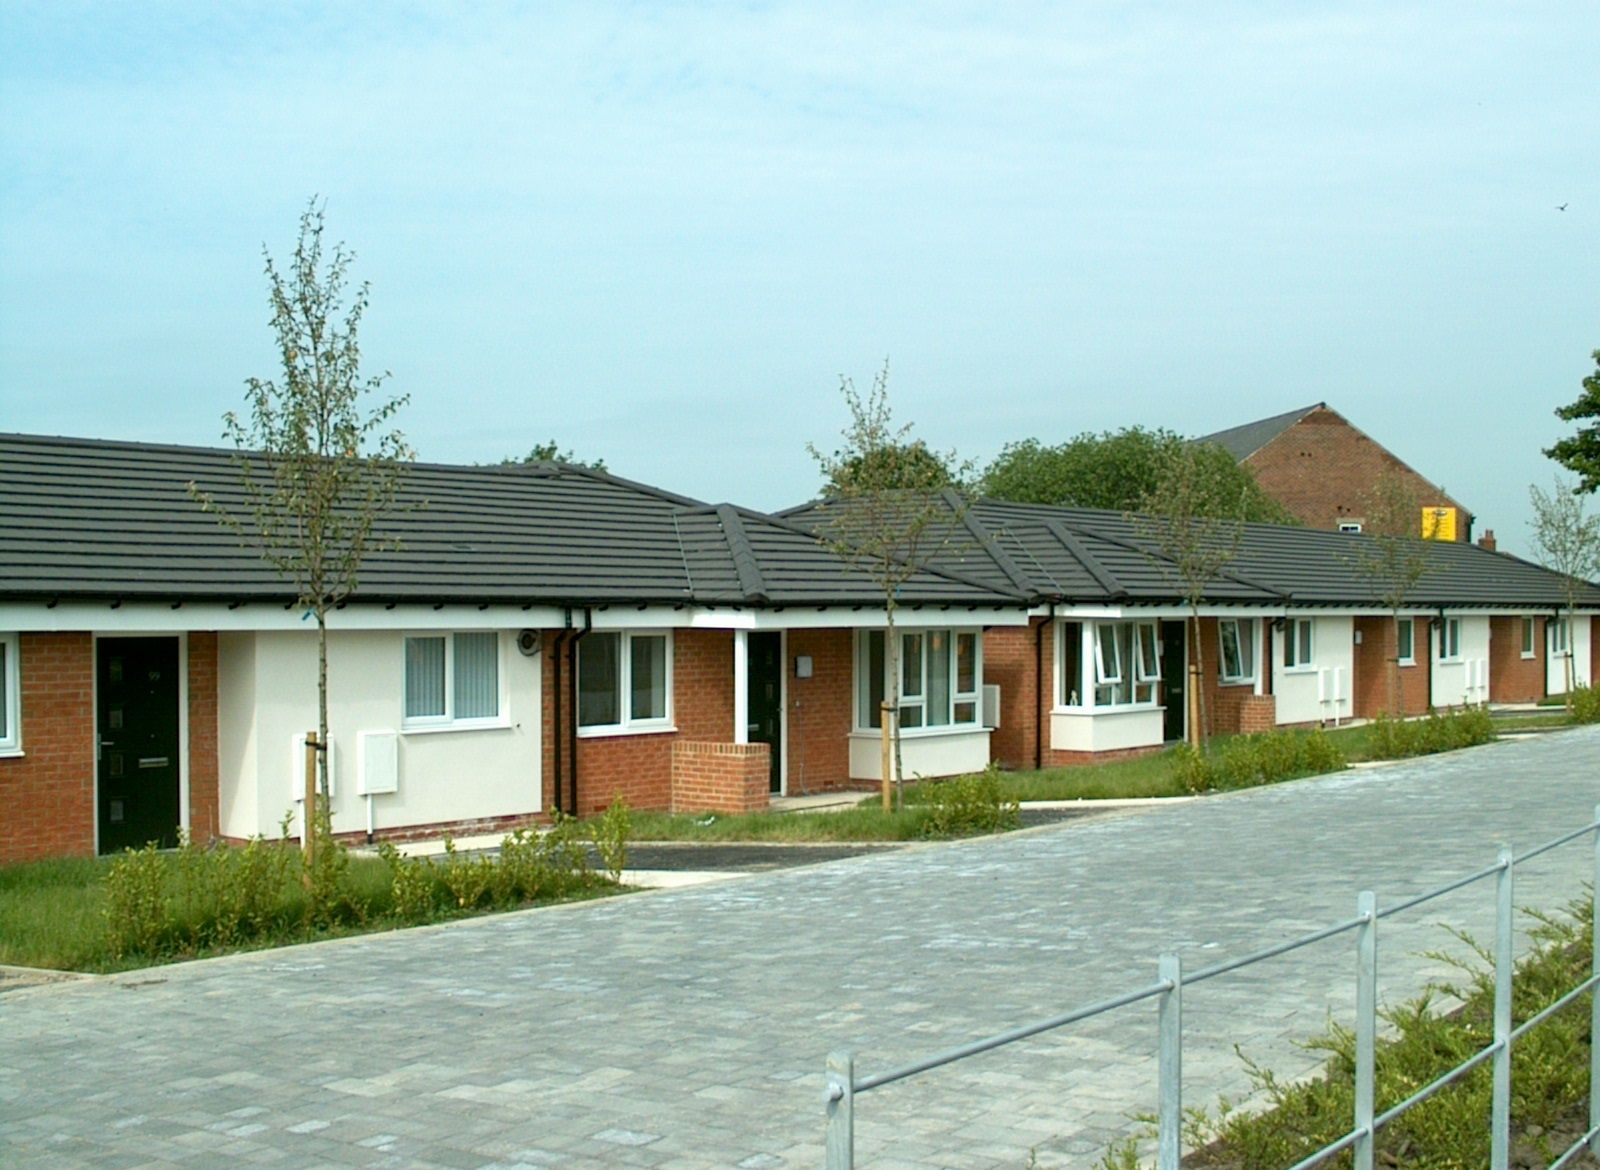 Bungalows on Whickham View